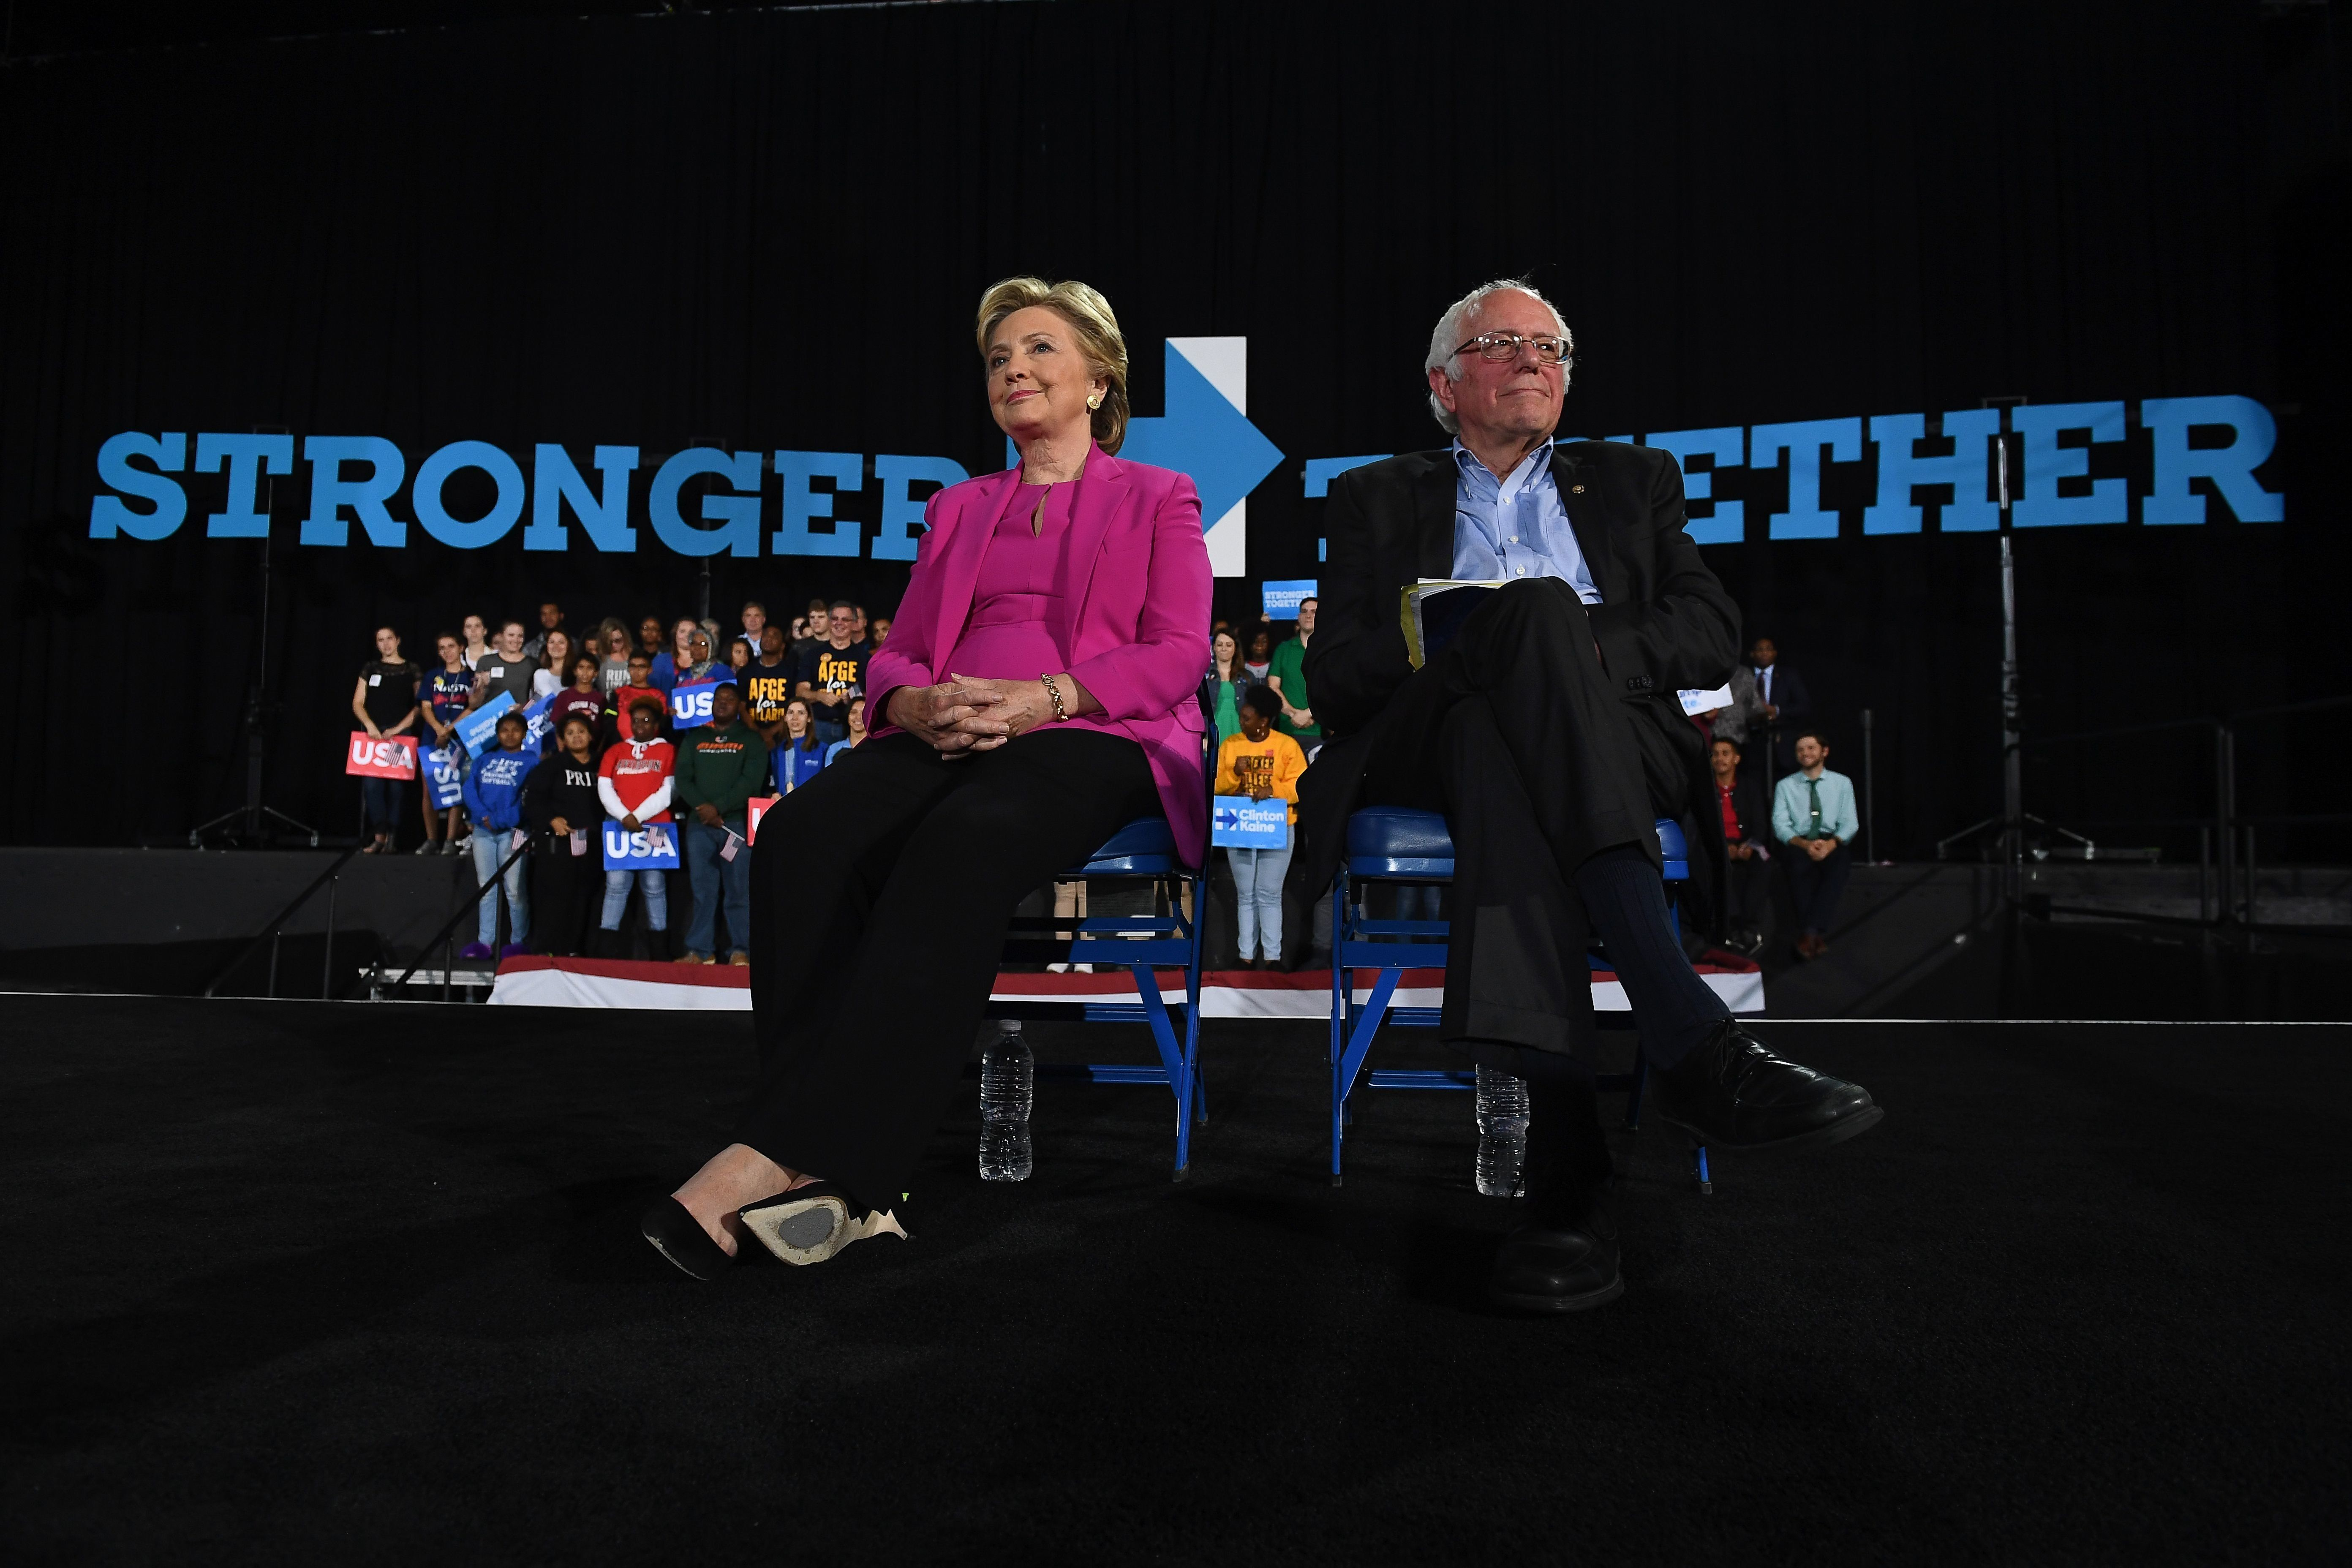 US Democratic presidential nominee Hillary Clinton and Bernie Sanders listen to singer Pharrell Williams during a campaign rally in Raleigh, North Carolina, on November 3, 2016.   / AFP / JEWEL SAMAD        (Photo credit should read JEWEL SAMAD/AFP/Getty Images)